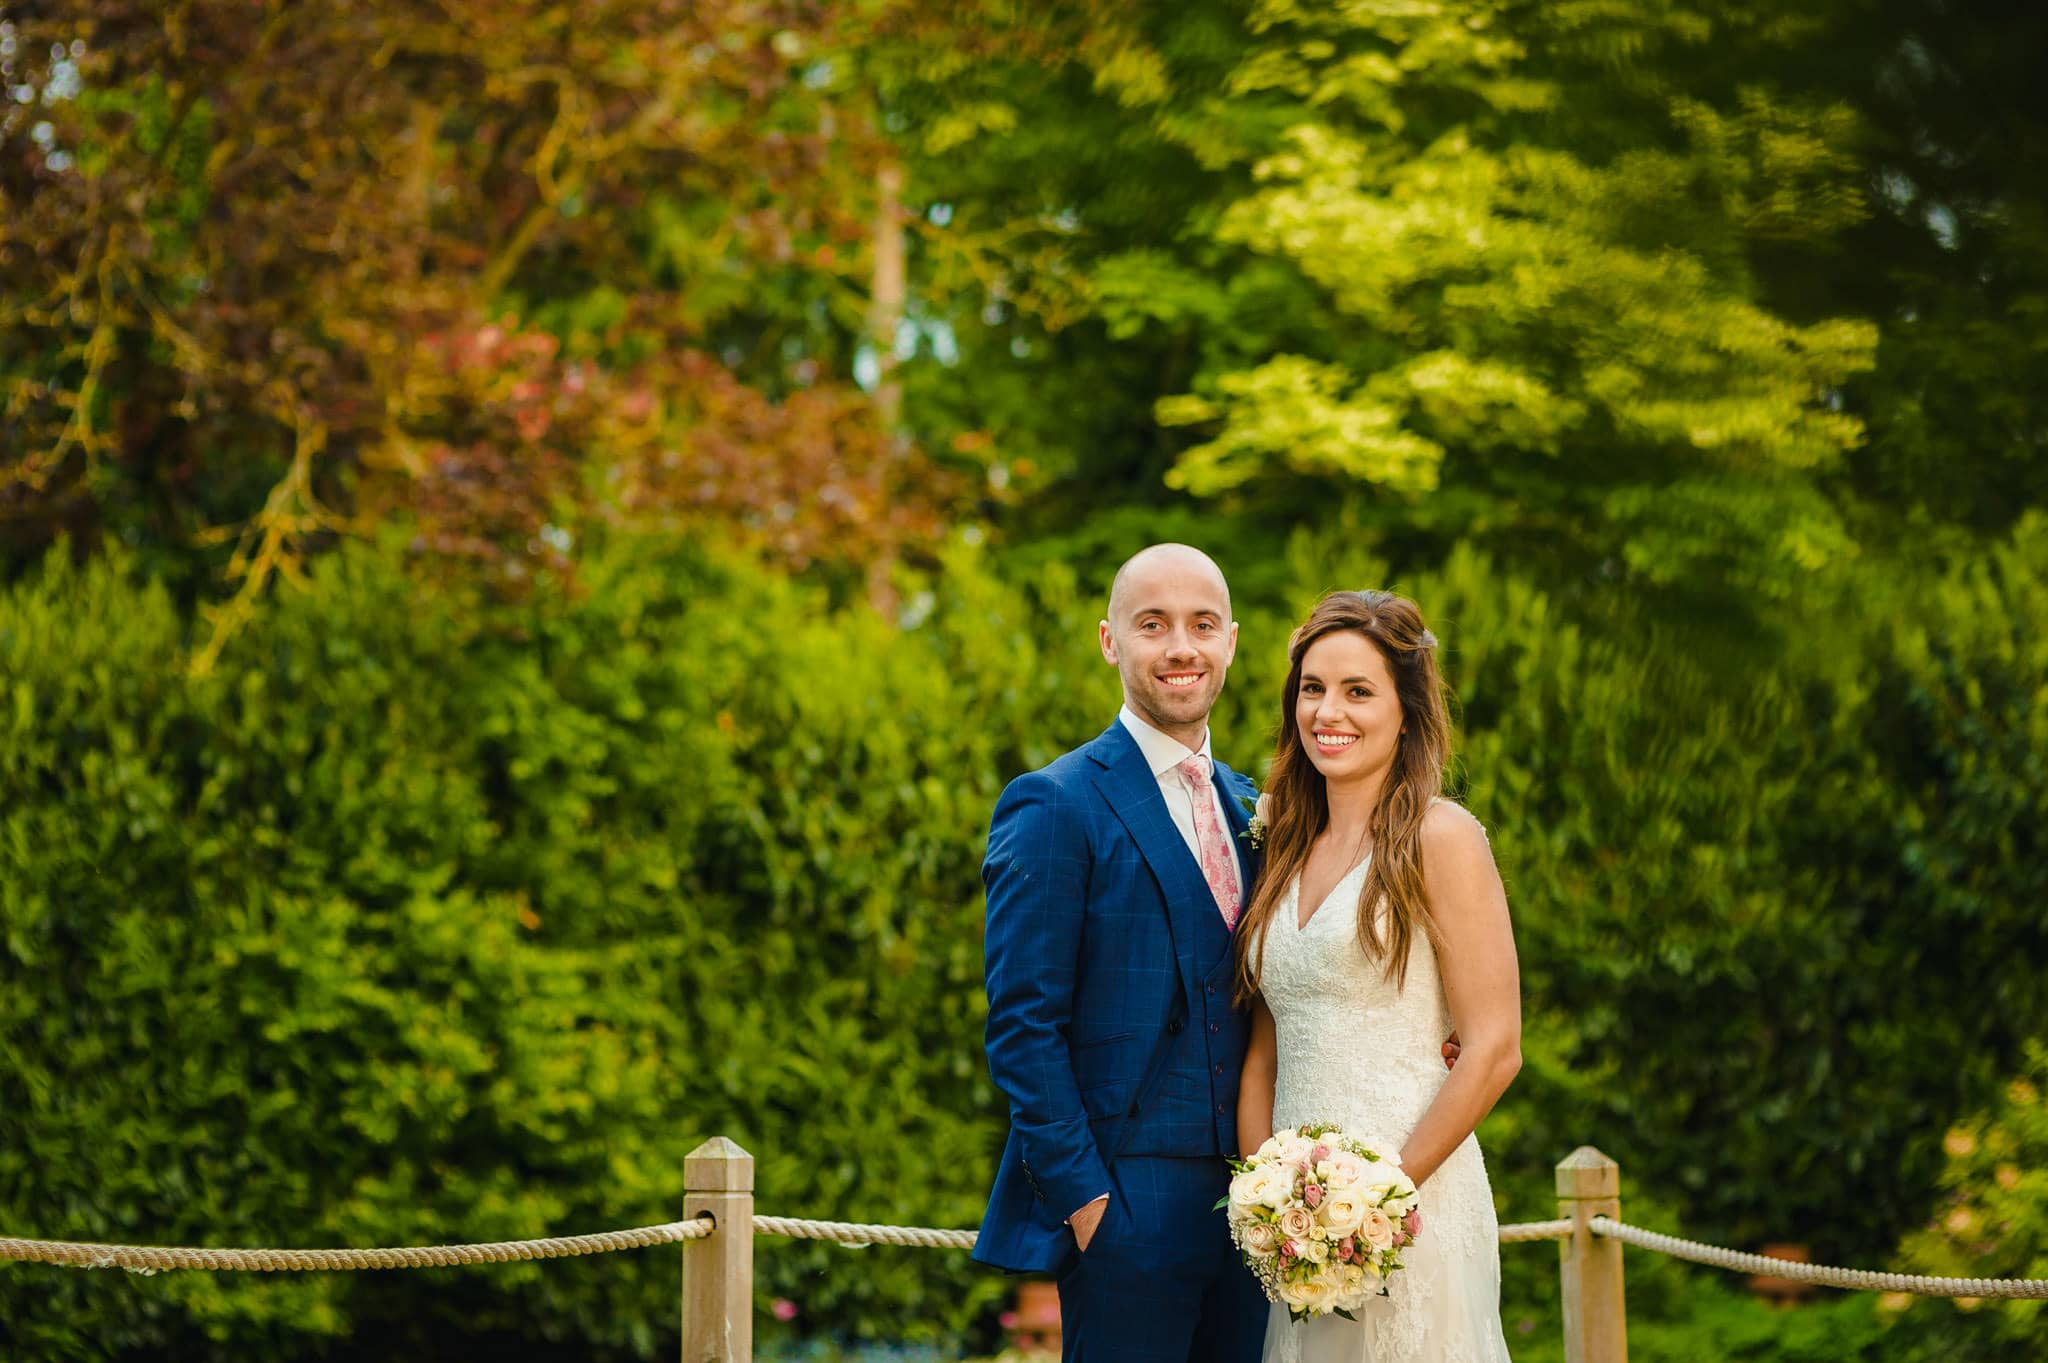 wedding at redhouse barn 196 - Wedding at Redhouse Barn in Stoke Prior, Worcestershire